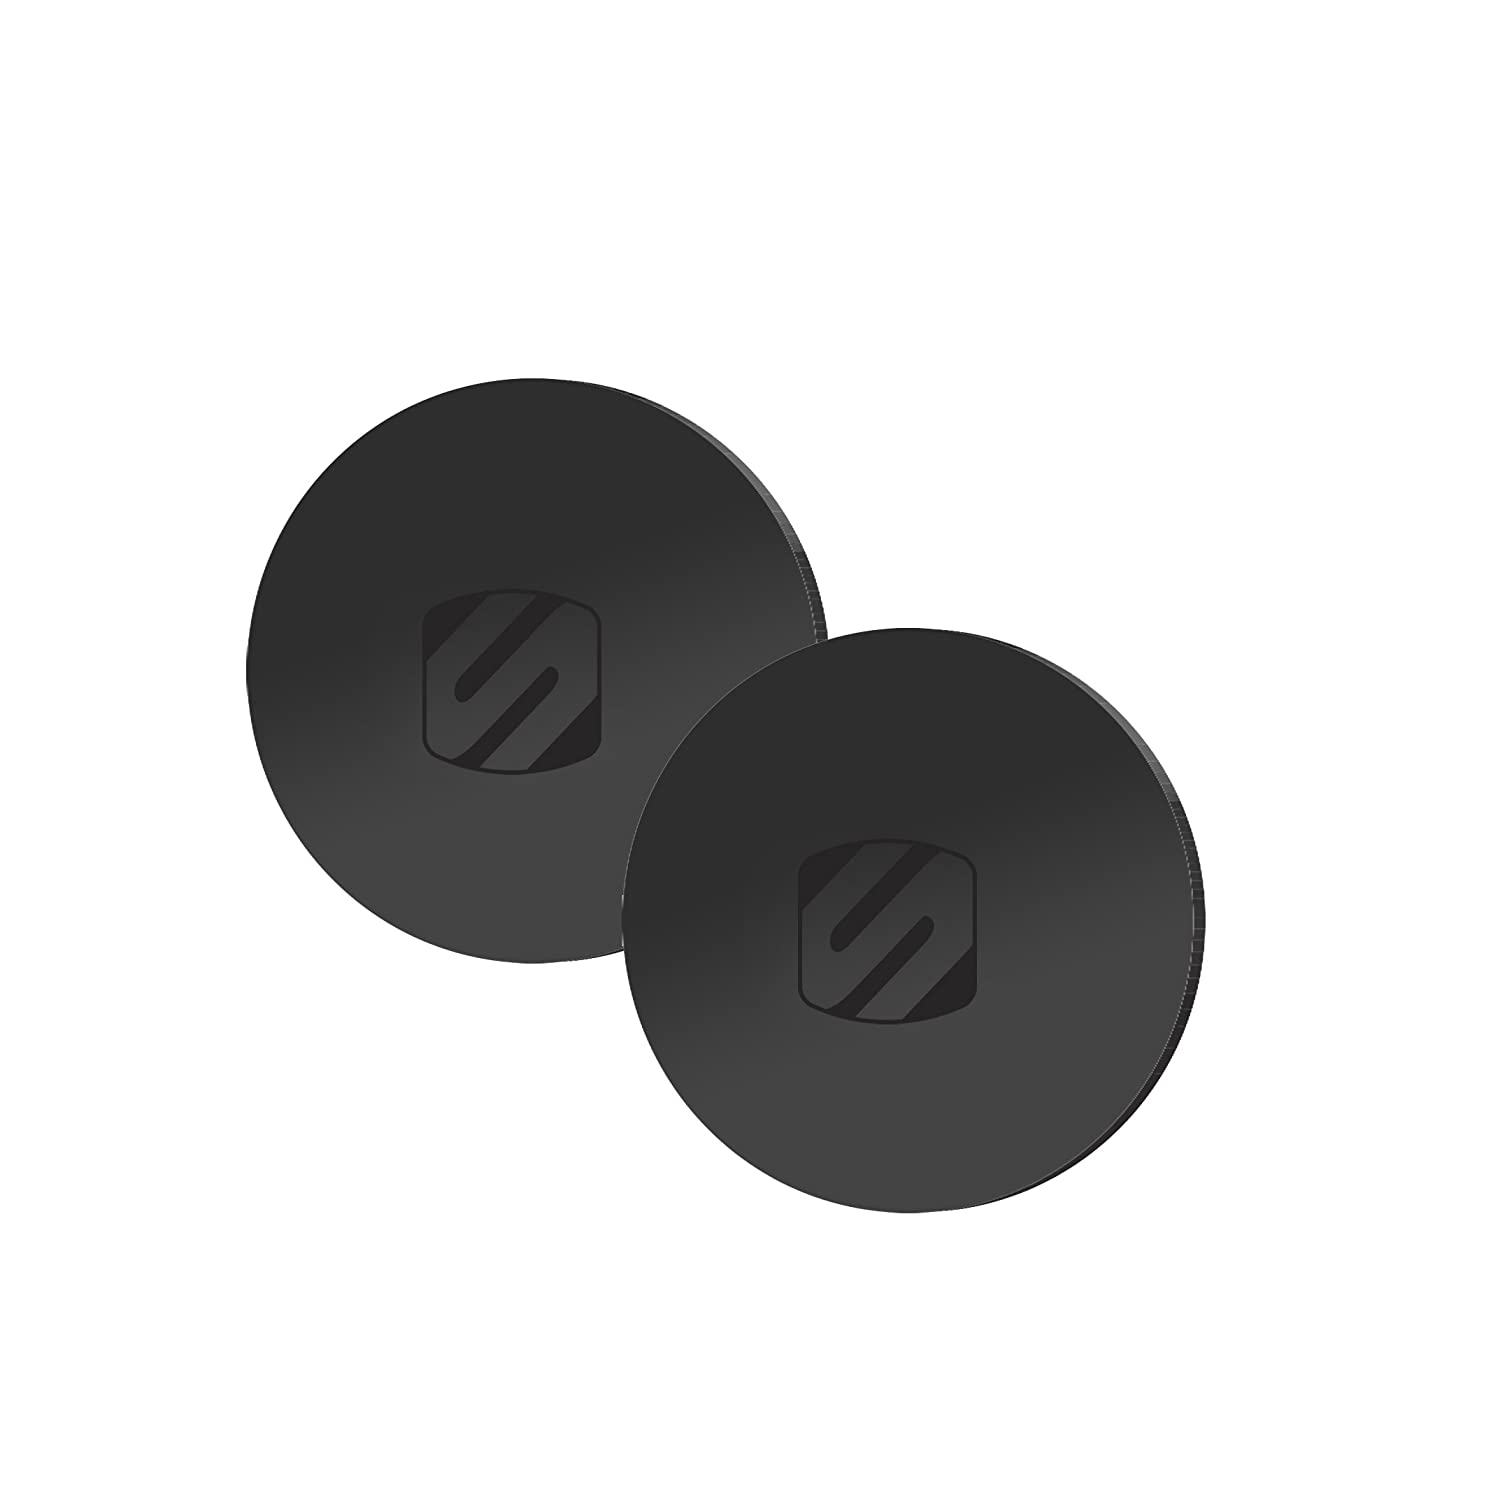 SCOSCHE MagicMount Magnetic Mount Replacement Plate Kit